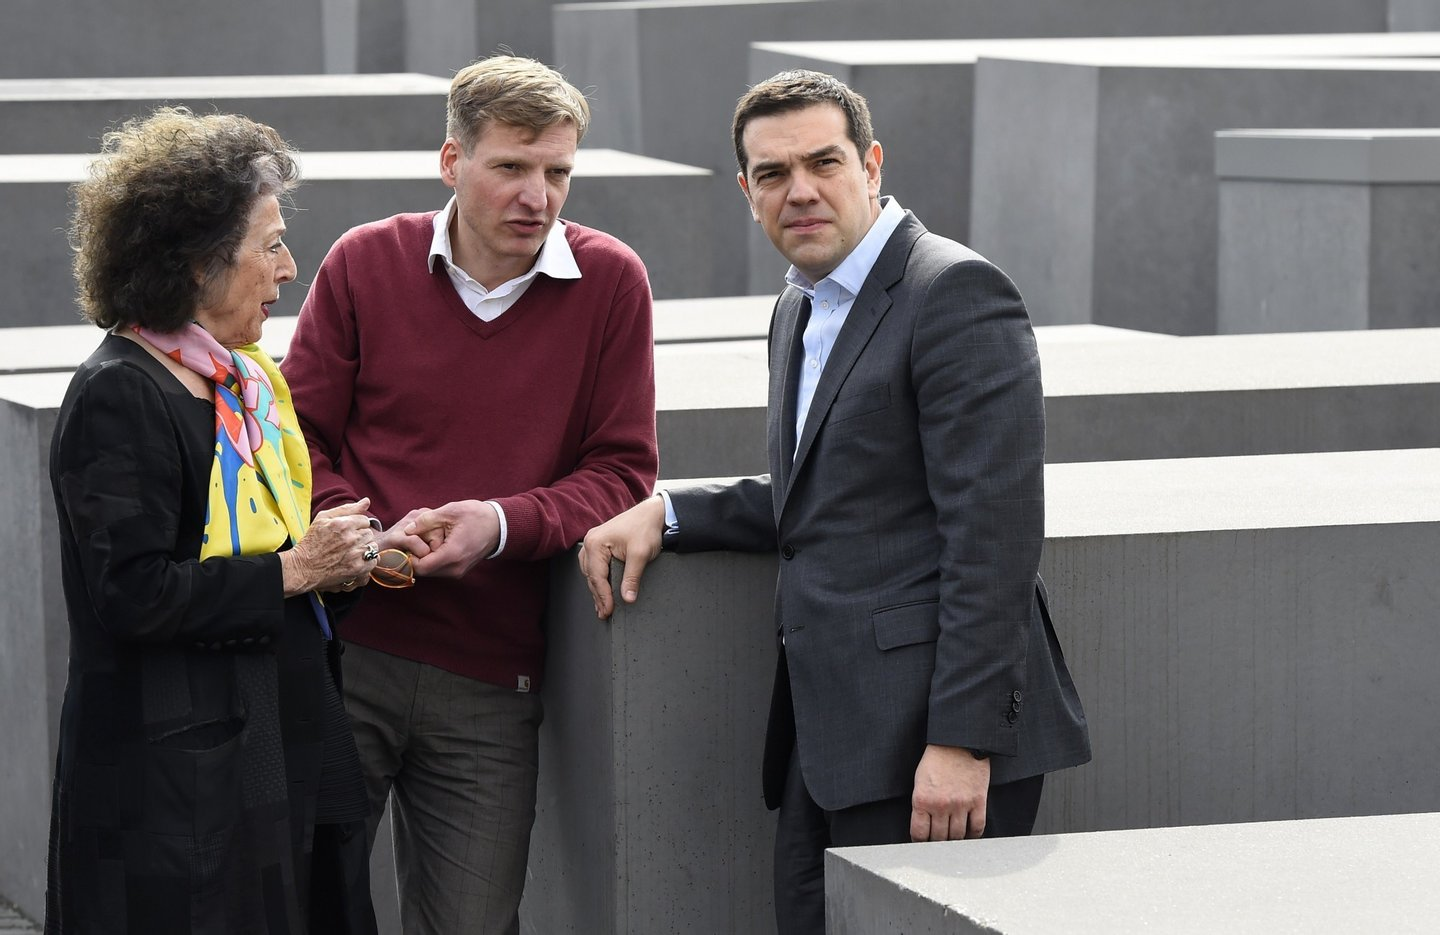 Greek Prime Minister Alexis Tsipras (R) talks with German journalist Lea Rosh (L), who is at the origin of the Memorial to the Murdered Jews of Europe aka Holocaust Memorial during its visit in Berlin on March 24, 2015. Tspiras is making his first visit to the German capital since taking office in January 2015.   AFP PHOTO / TOBIAS SCHWARZ        (Photo credit should read TOBIAS SCHWARZ/AFP/Getty Images)